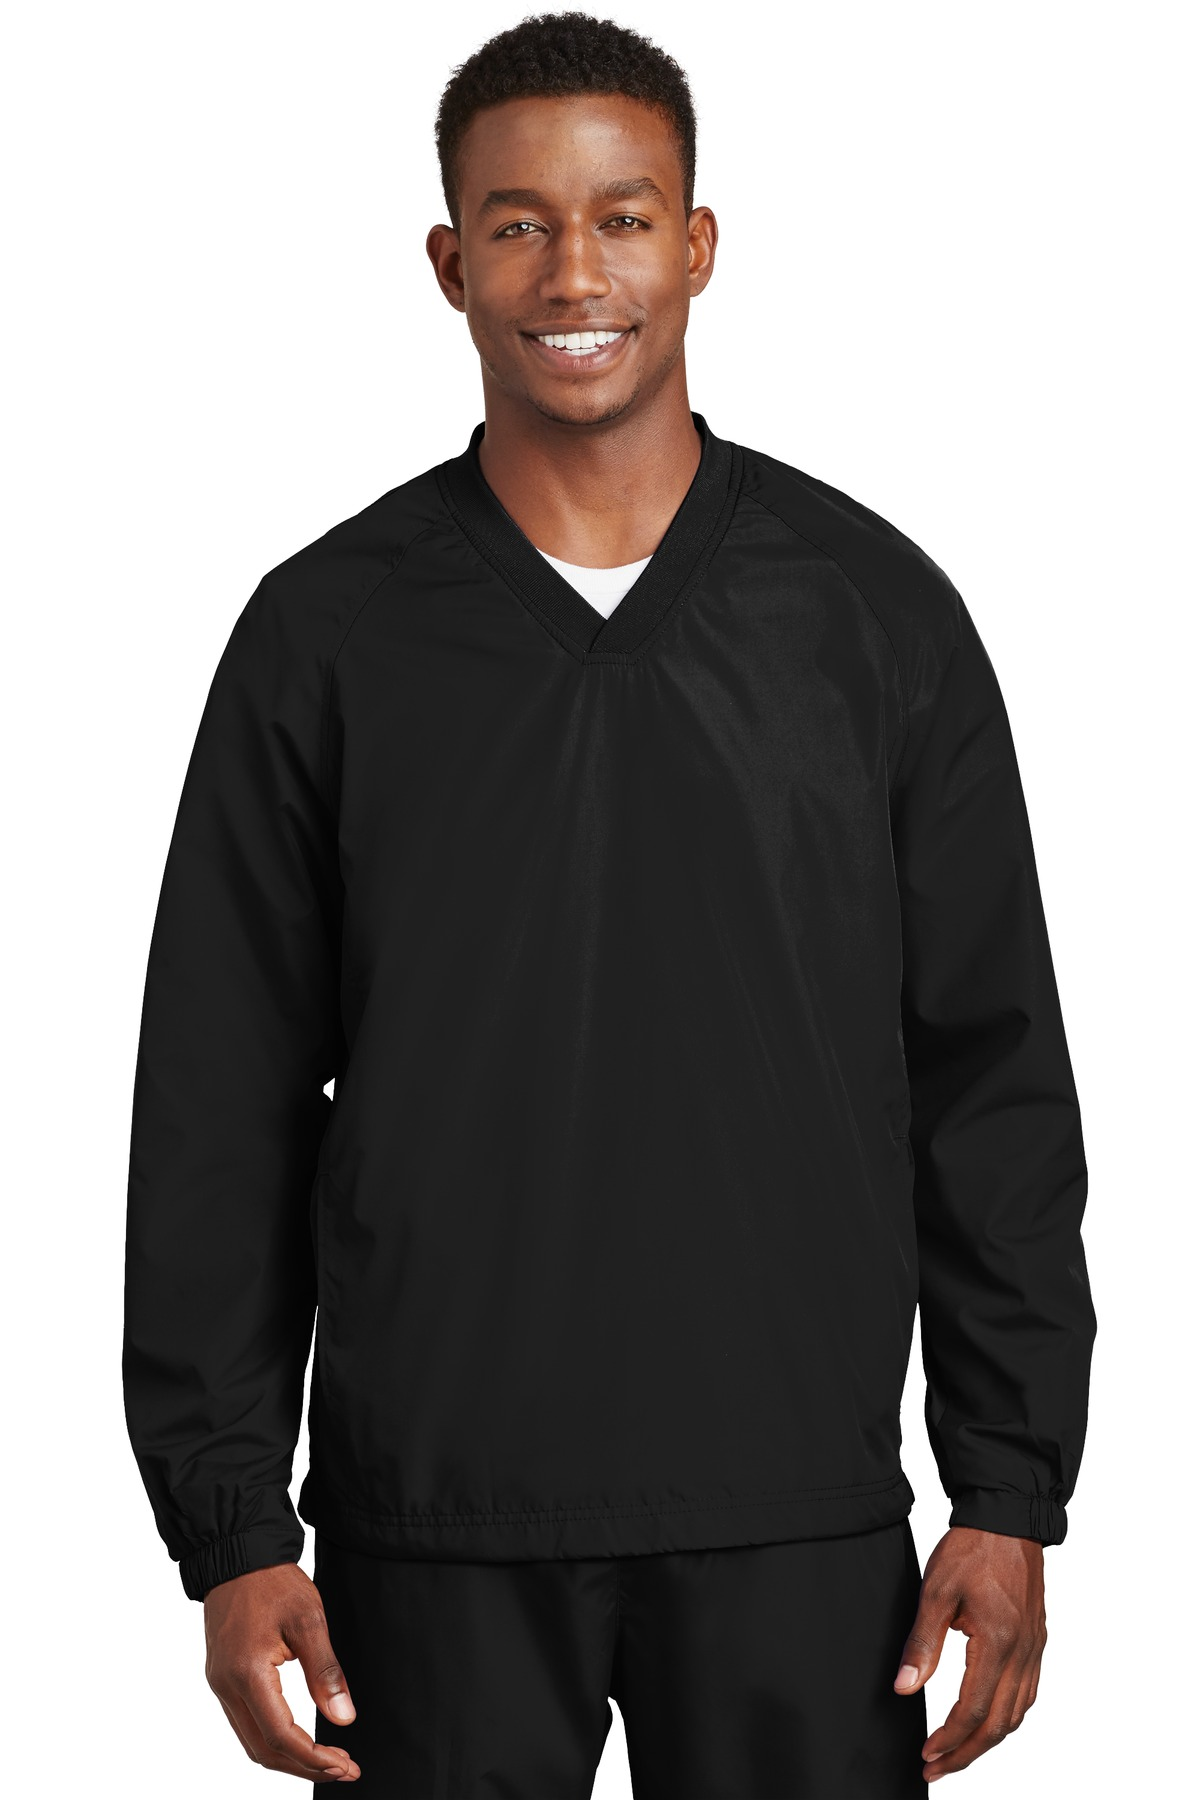 Sport-Tek ®  V-Neck Raglan Wind Shirt. JST72 - Black